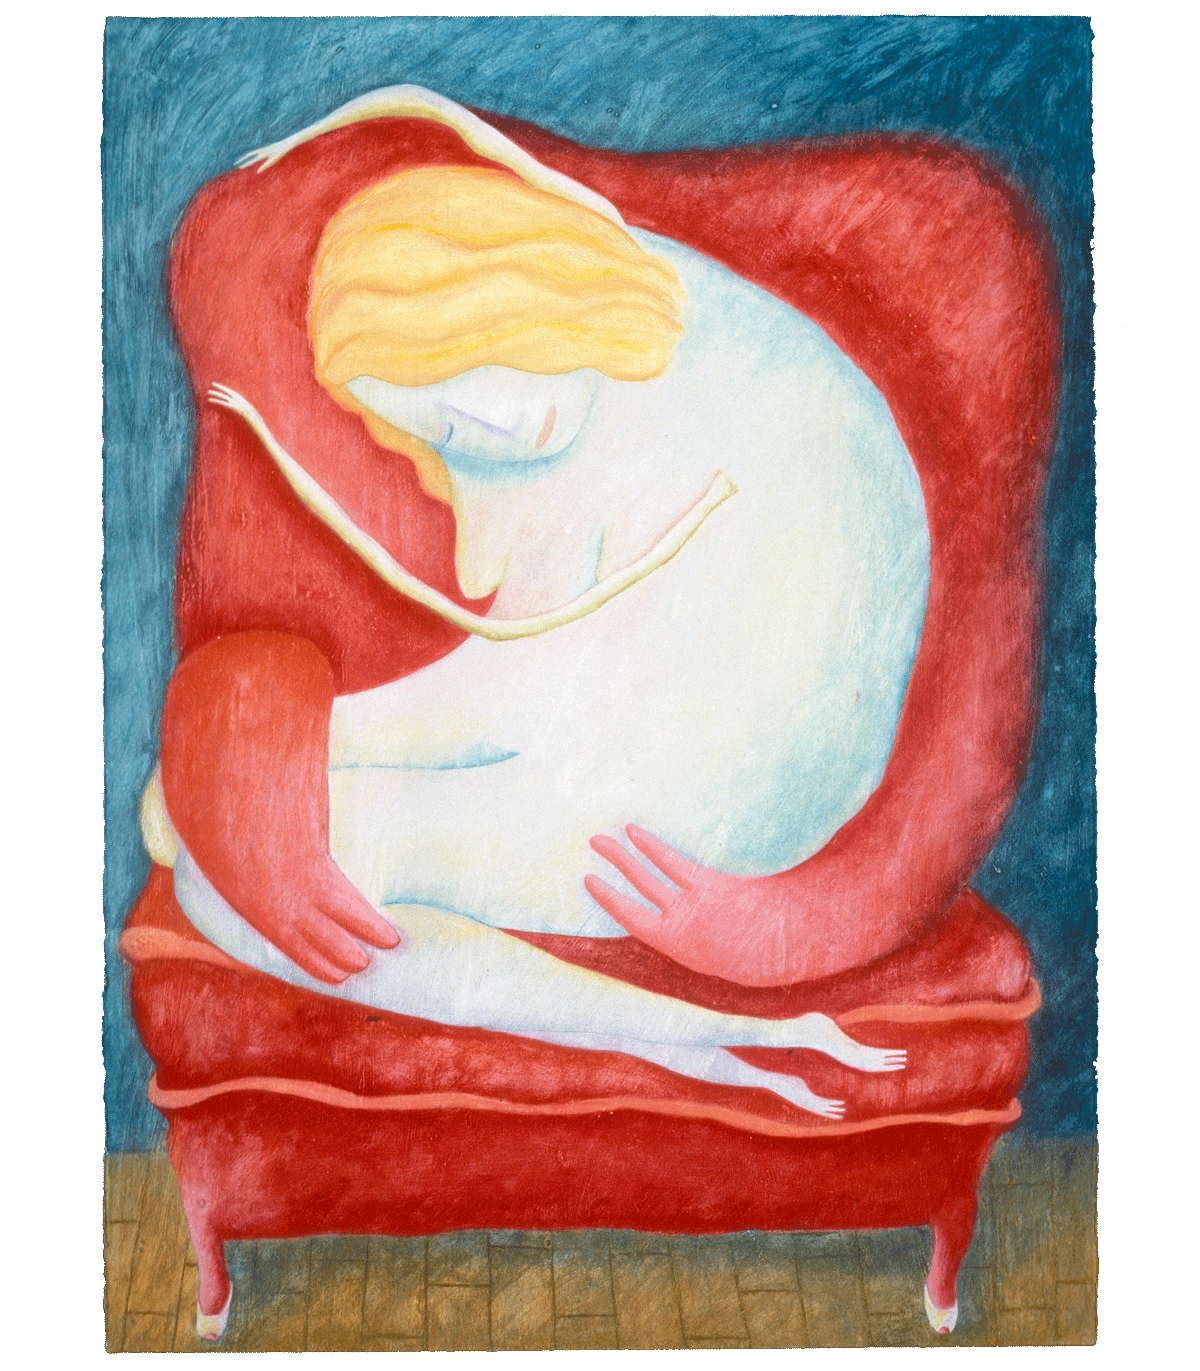 virginiahalstead.com/Paintings/The-Mother-Chair.png